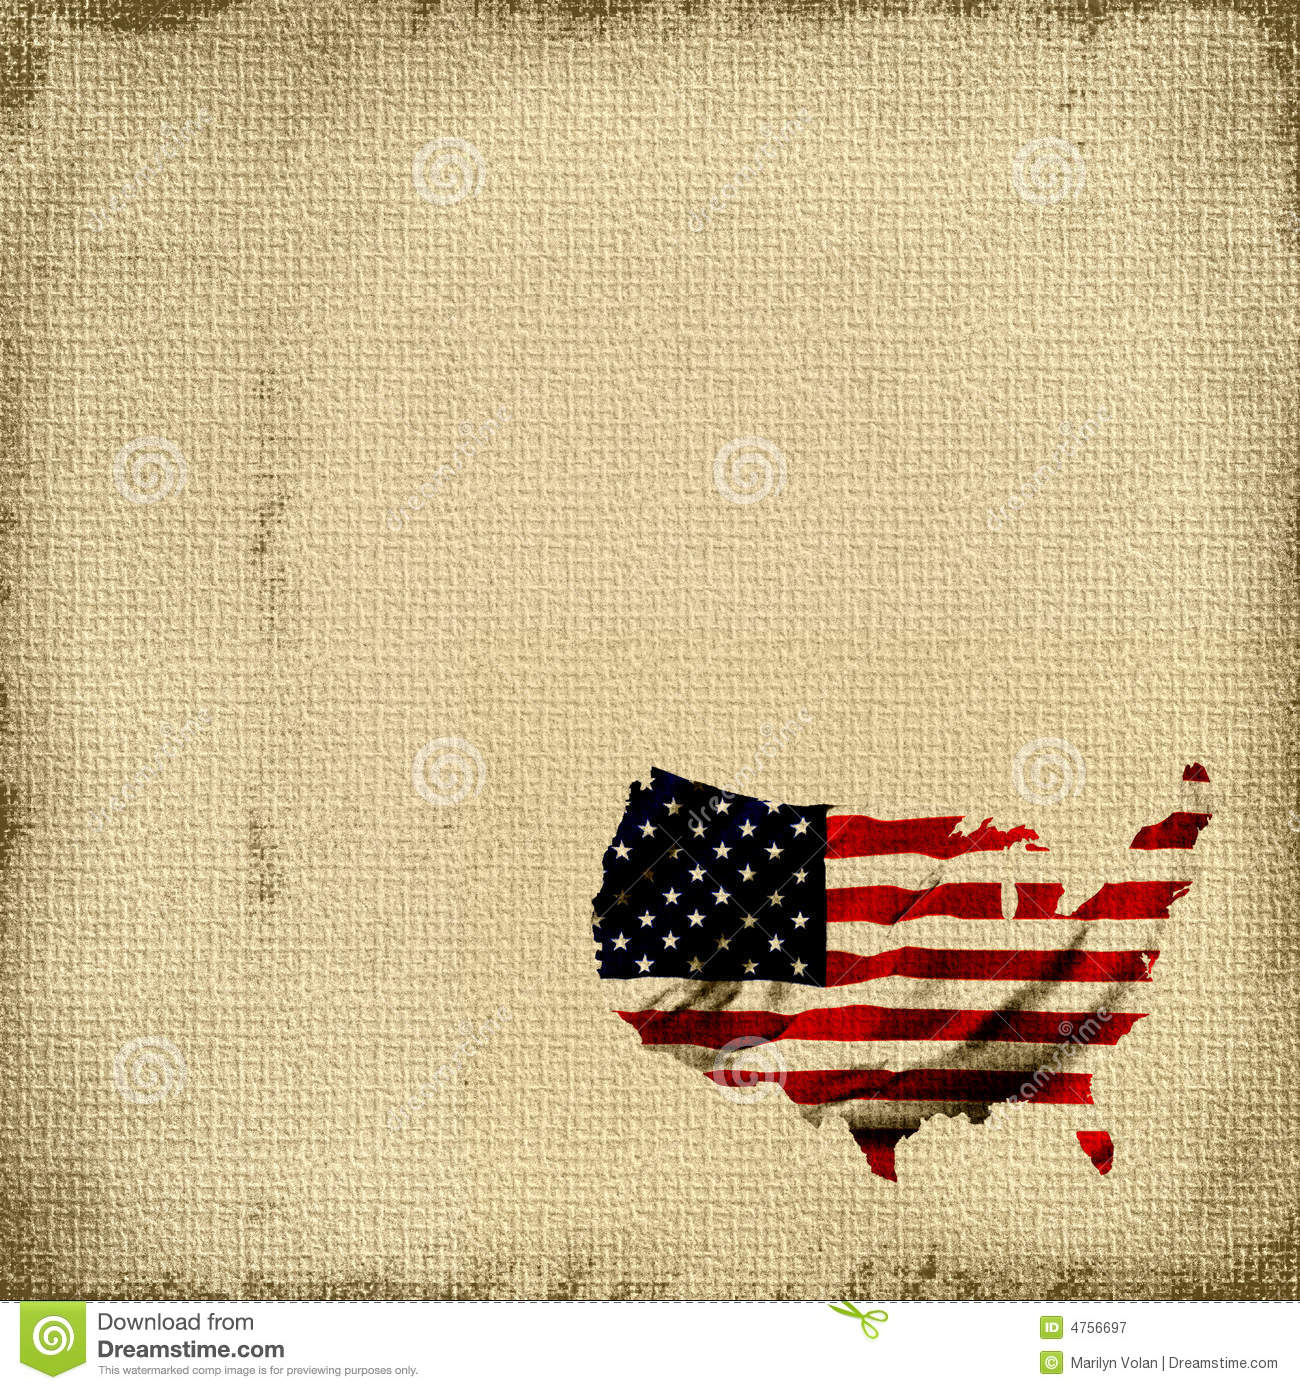 american flag tapestry burlap canvas tapestry background with the map of america shaped into the